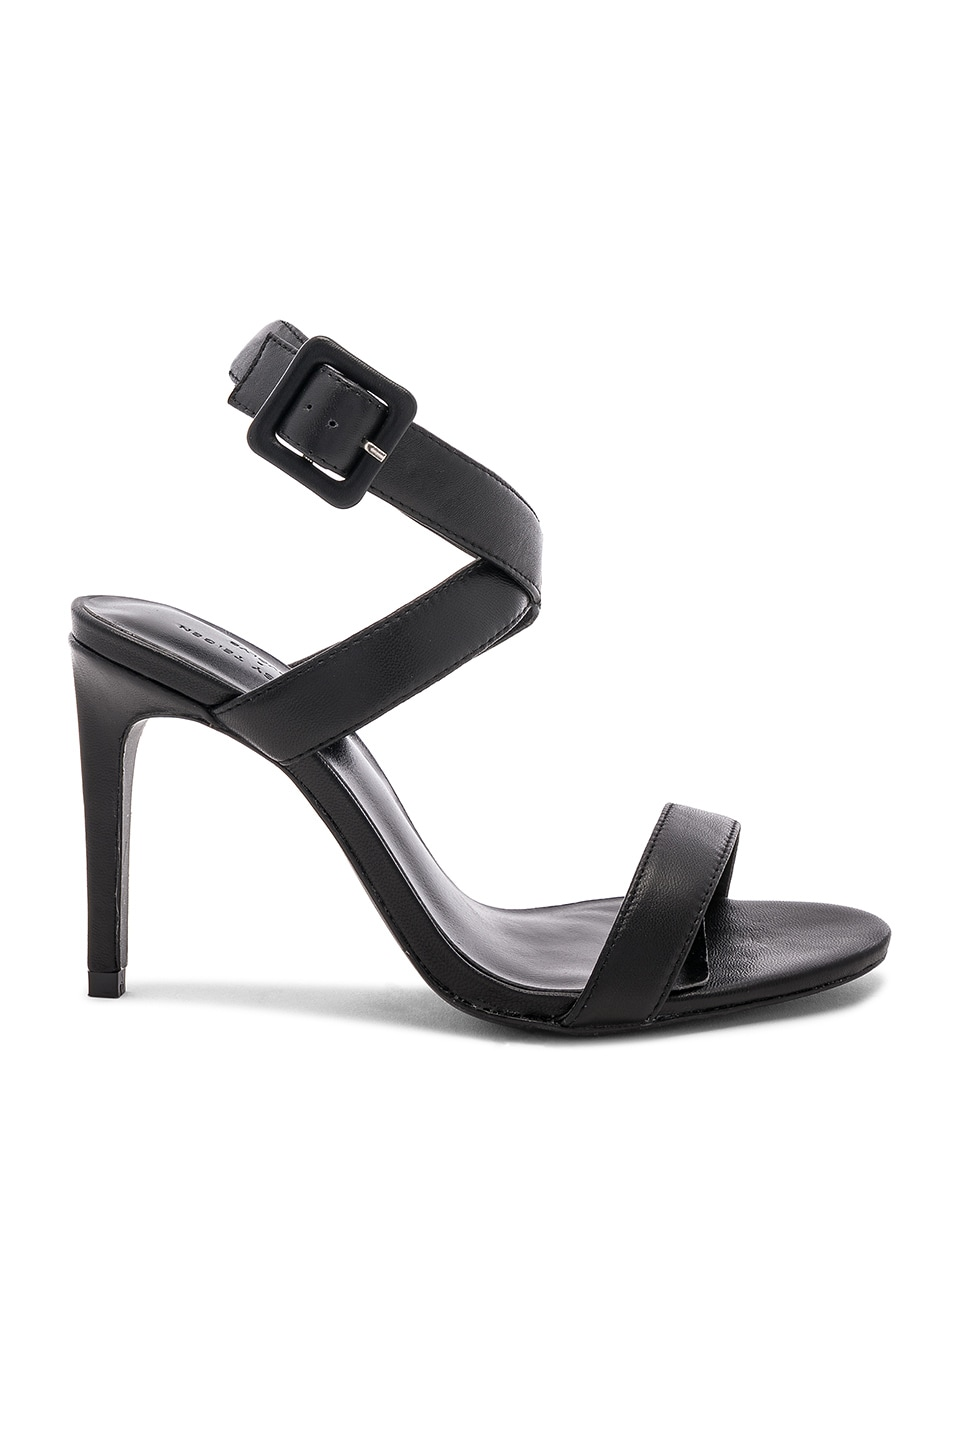 Chrissy Teigen x REVOLVE Murry Heel in Black